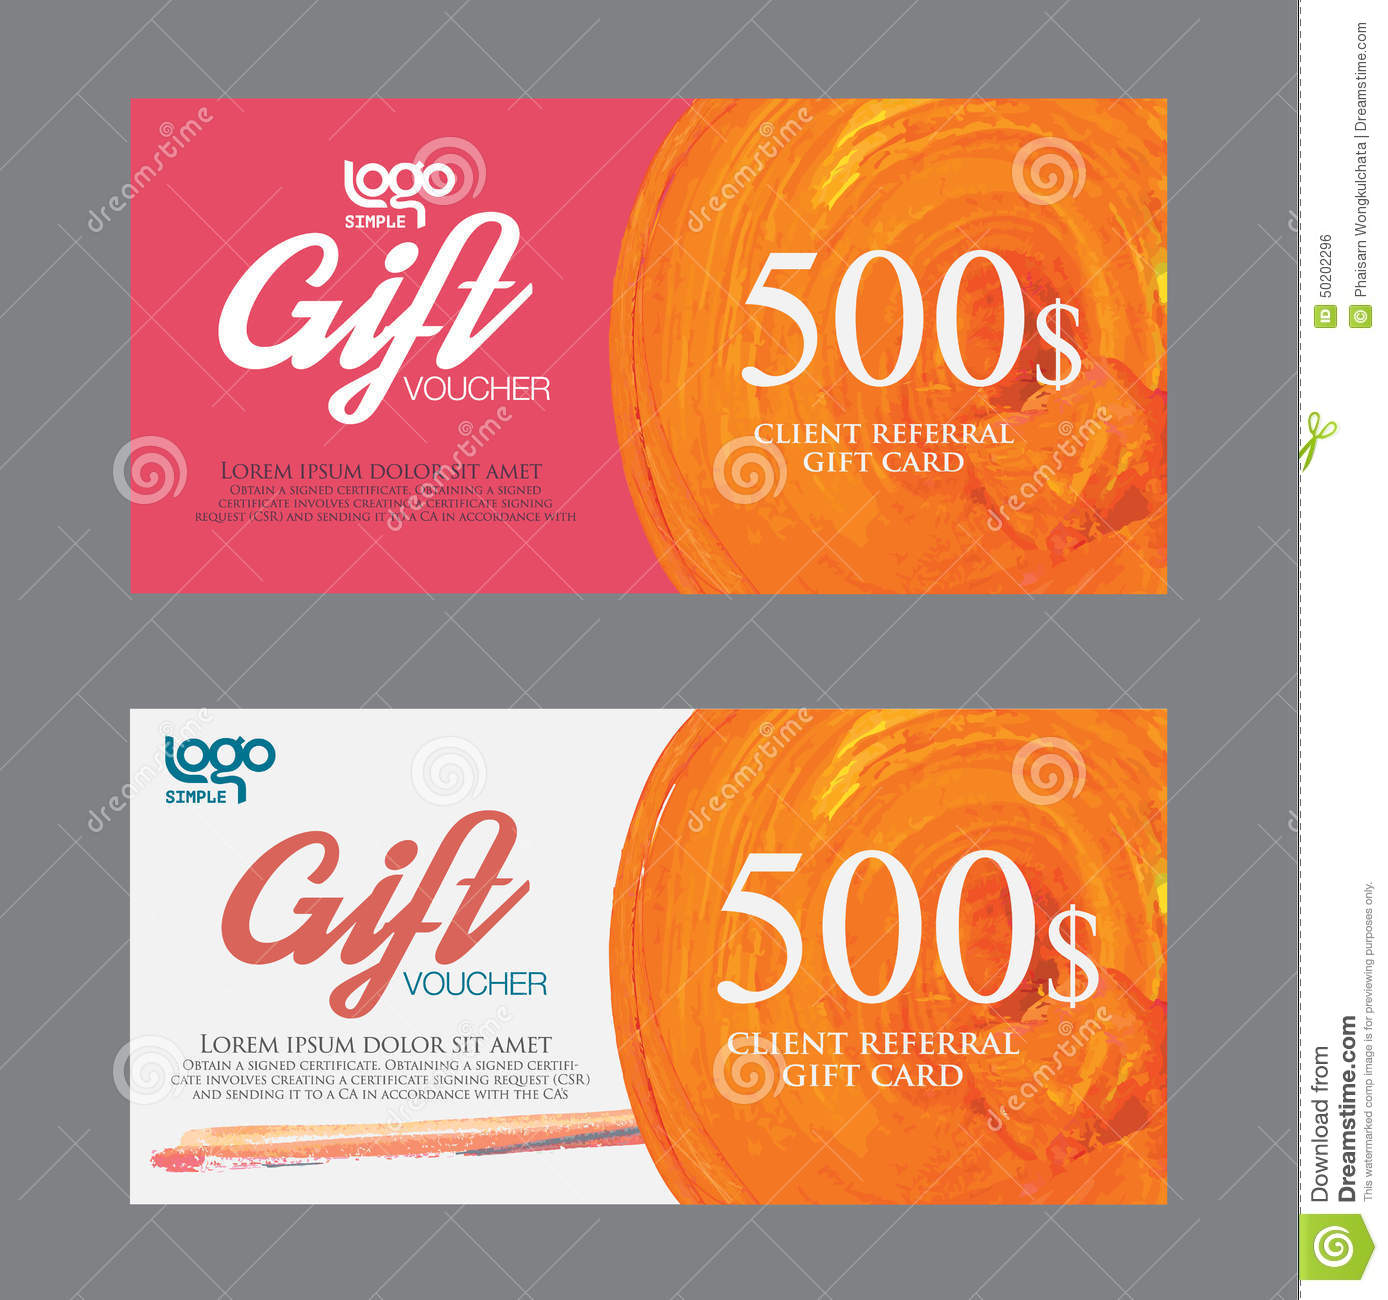 Premium Stock Photos Voucher template with premium